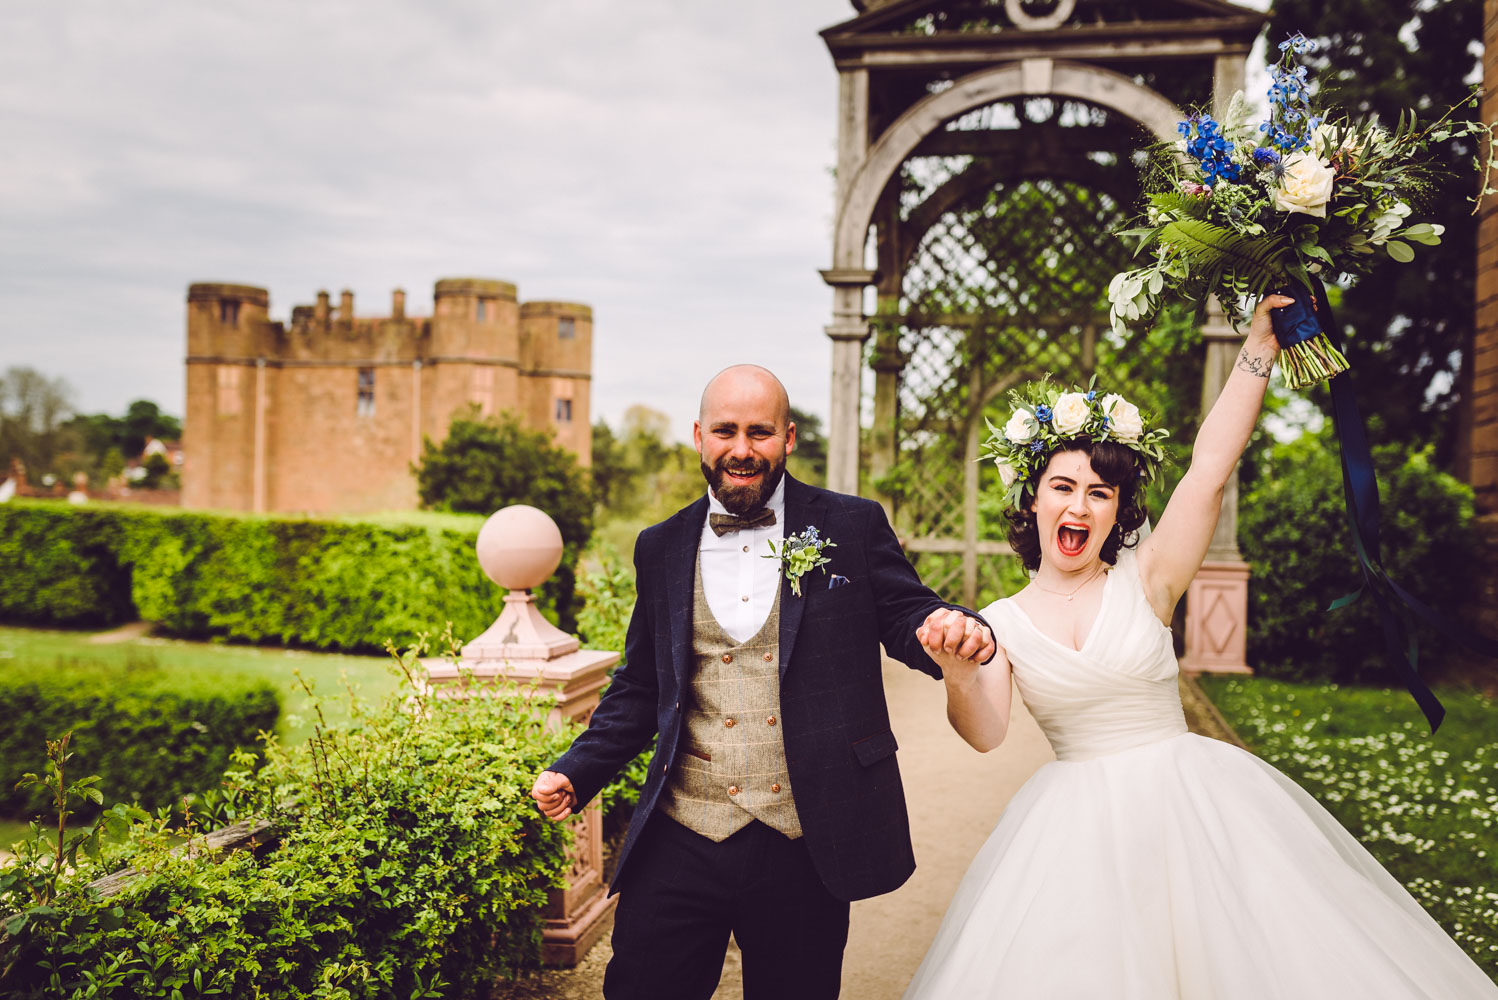 bride-and-groom-celebrate-at-kenilworth-castle.jpg